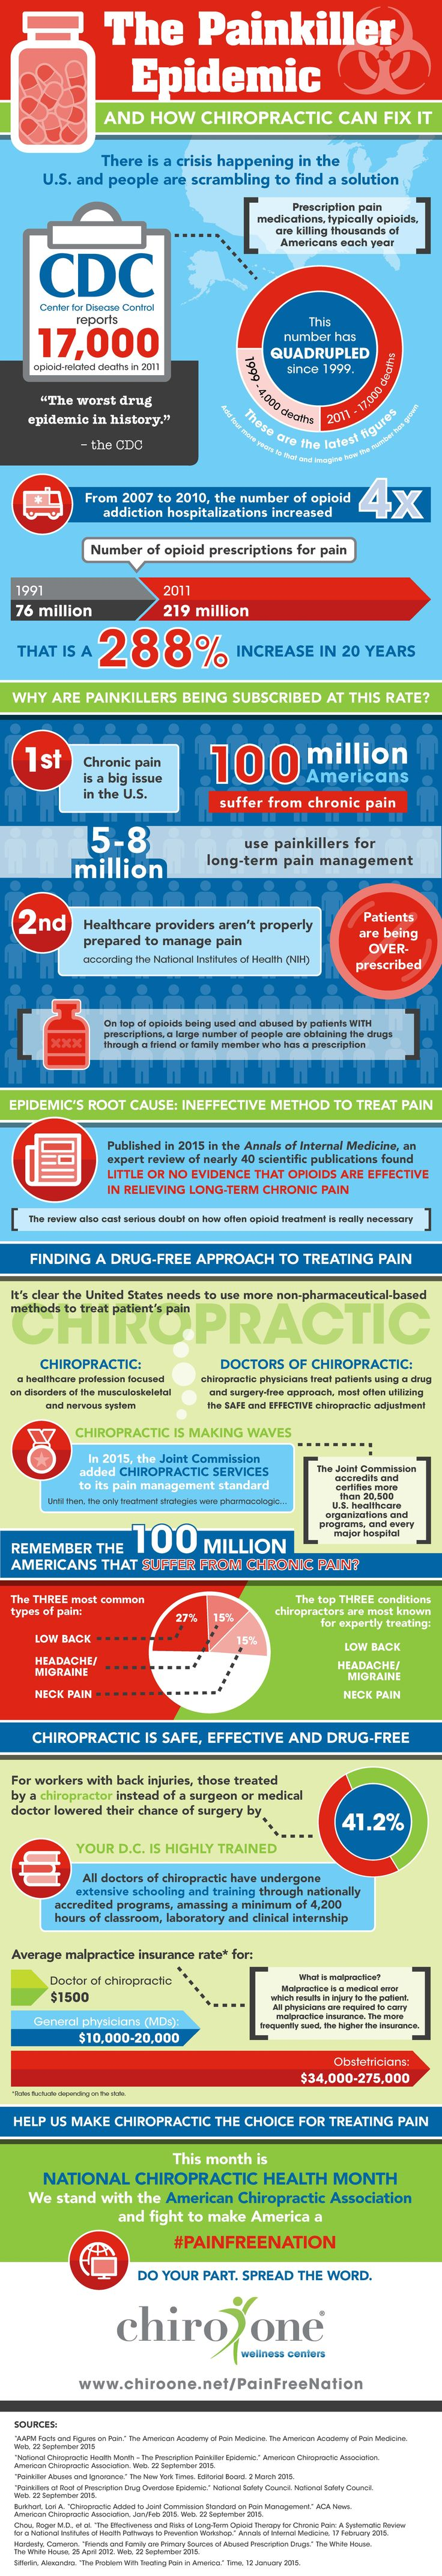 Chiropractic and a #PainFreeNation | Chiro One Chiropractic Wellness Centers